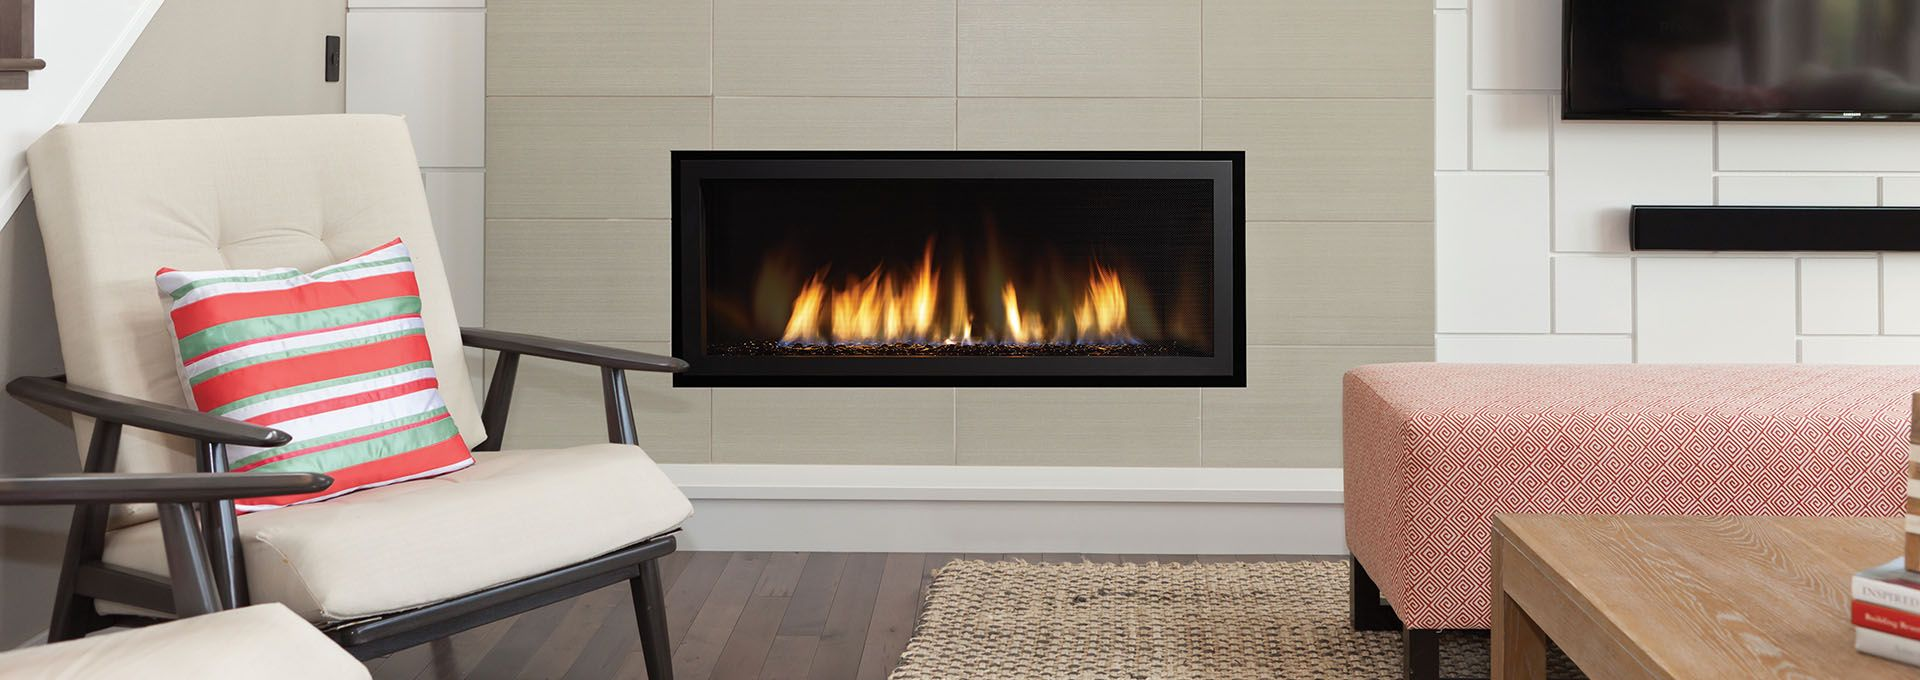 Wonderful Gas Fireplace Repair With Modern Wall Design Front